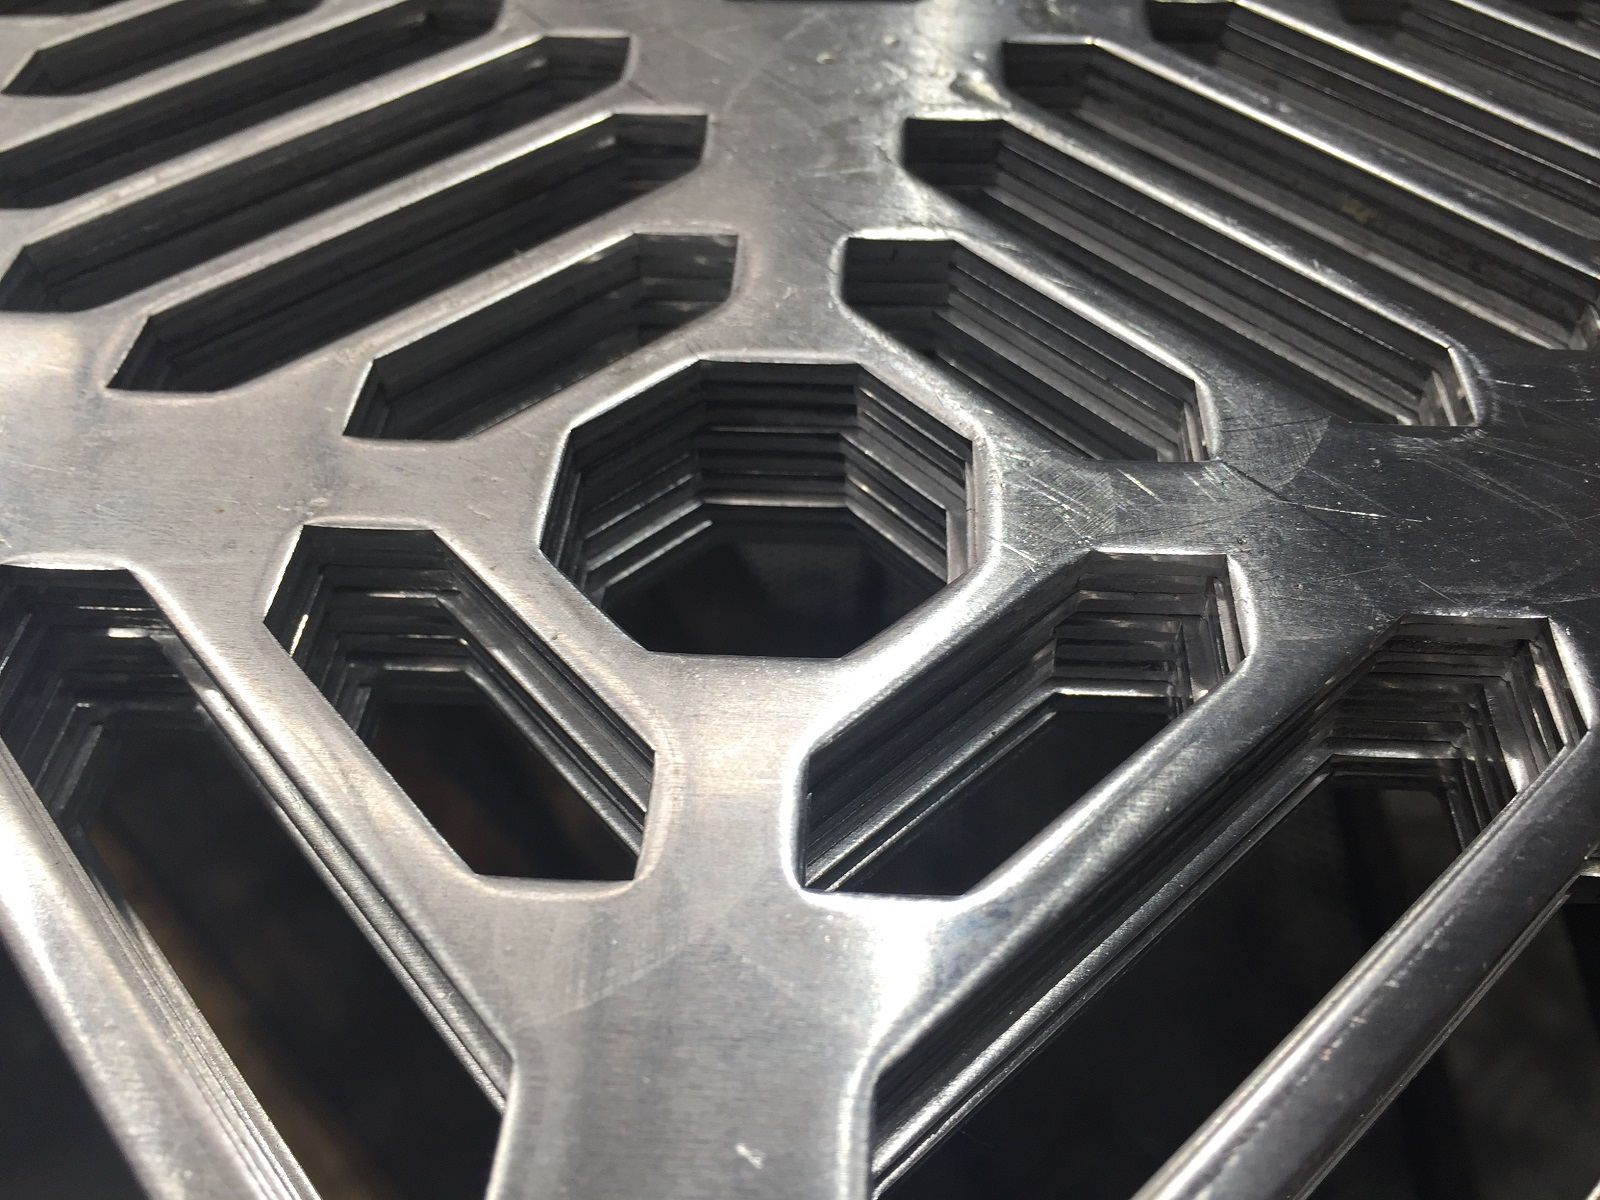 Perforated sheet metal designs - new capability at Arrow Metal